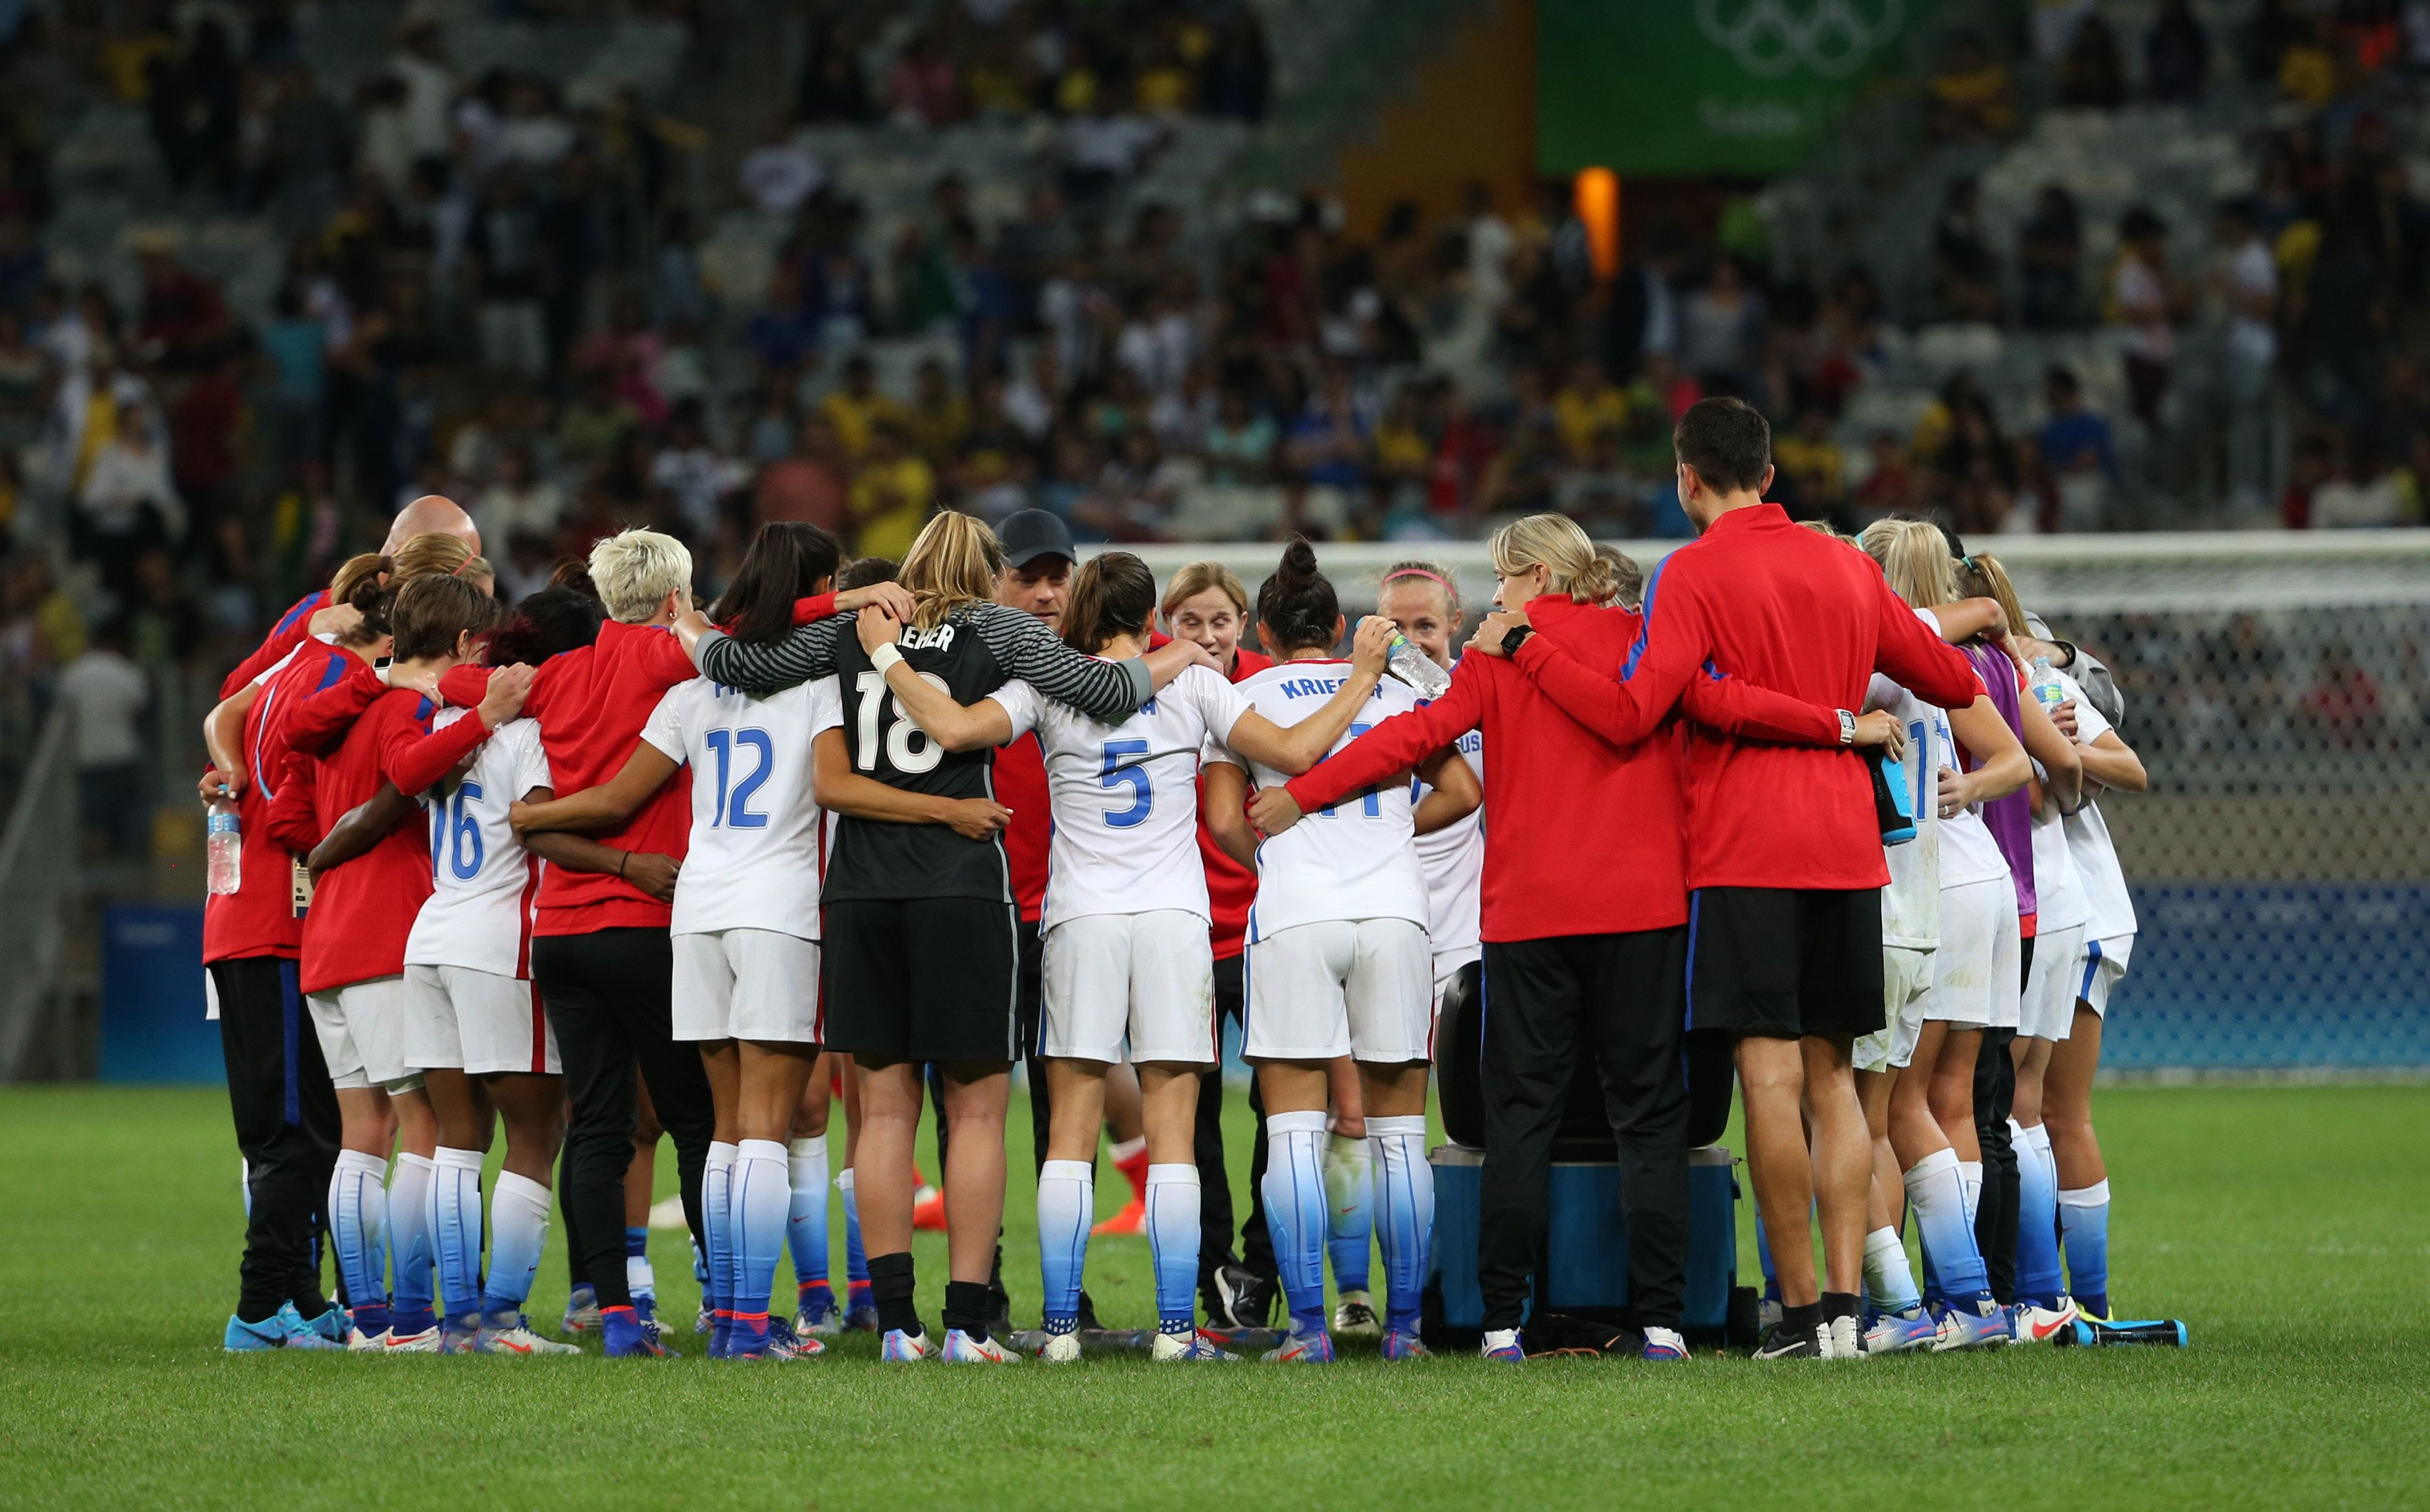 U.S. Women's Soccer Team Sues Federation For Equal